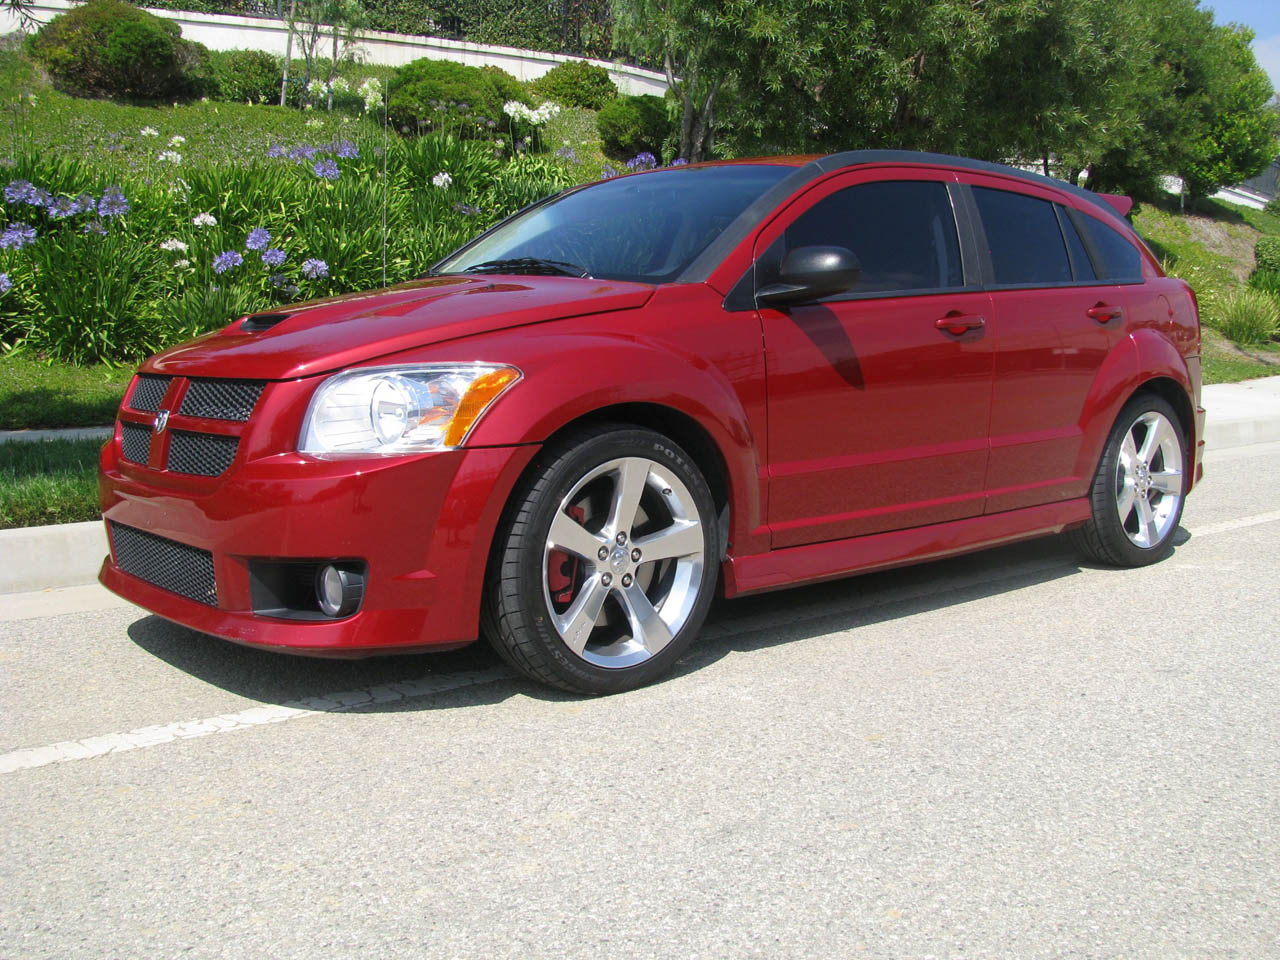 2008 Dodge Caliber SRT-4 MS1K